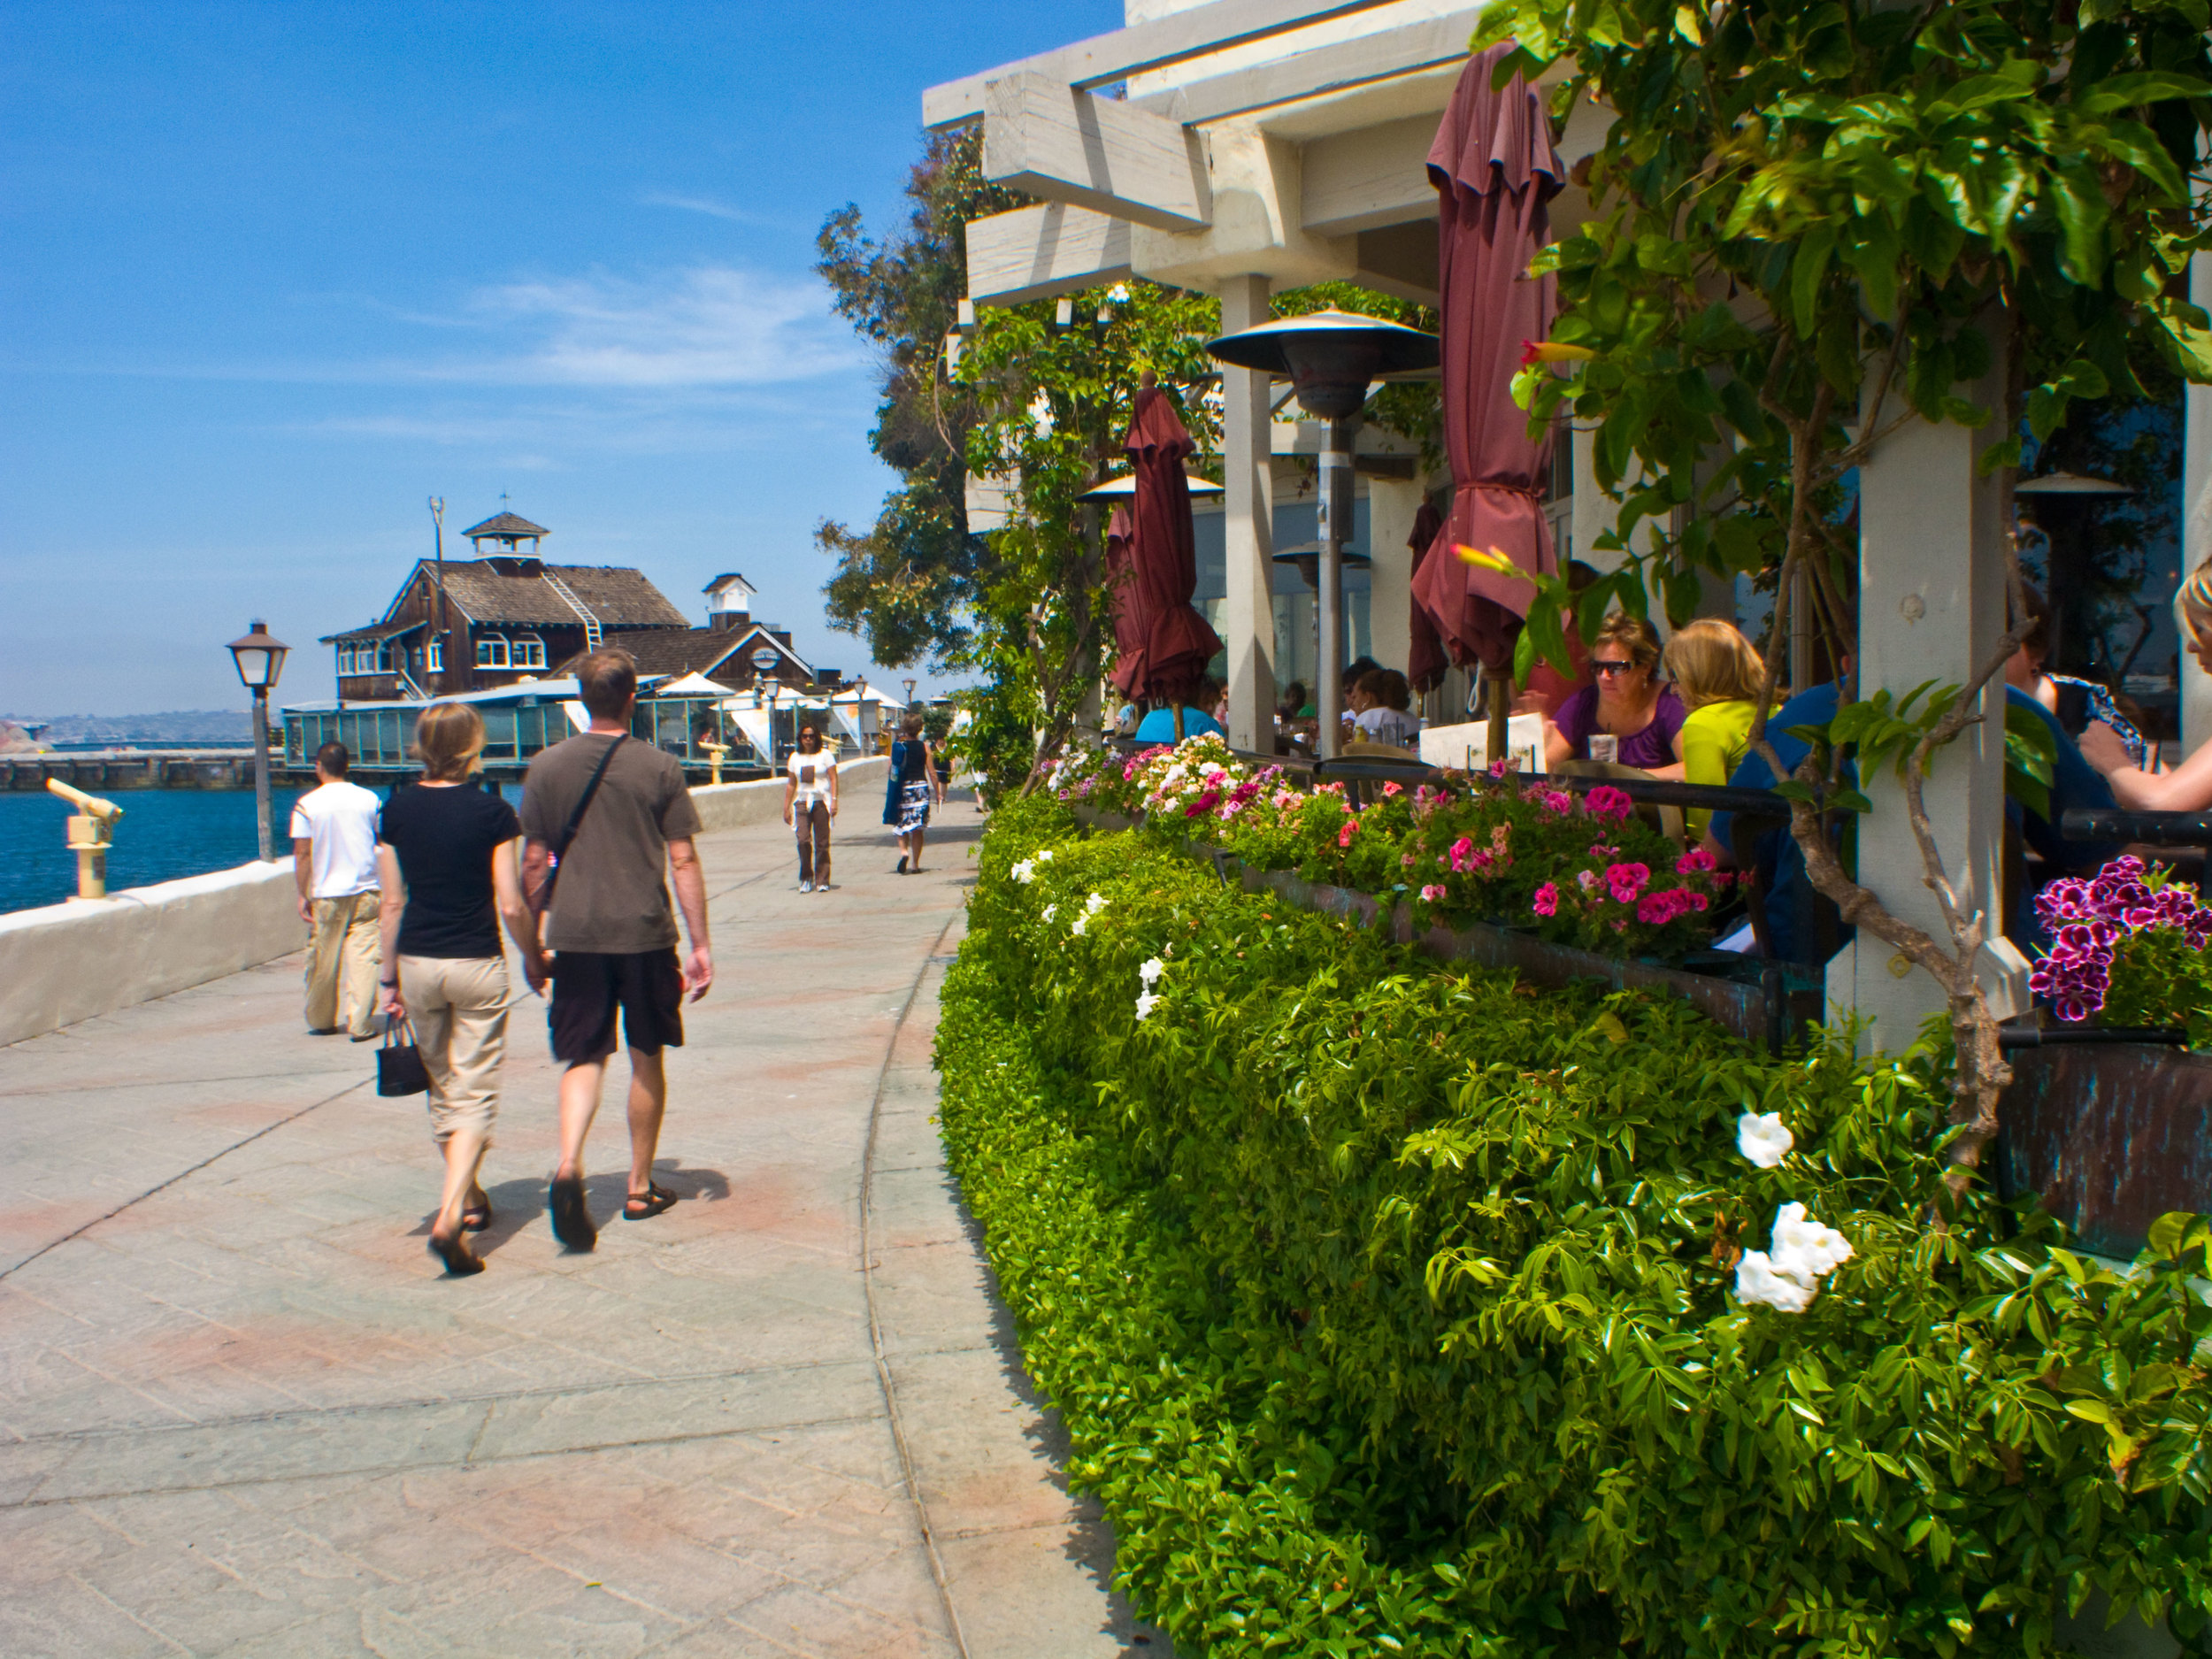 A 14 acre waterfront shopping, dining and entertainment complex recreating a harbor side setting of a century ago. Includes 54 one of a kind shops, 13 casual dining eateries, 4 fine dining waterfront restaurants, and located in close proximity to local hotels. Opened in 1980.